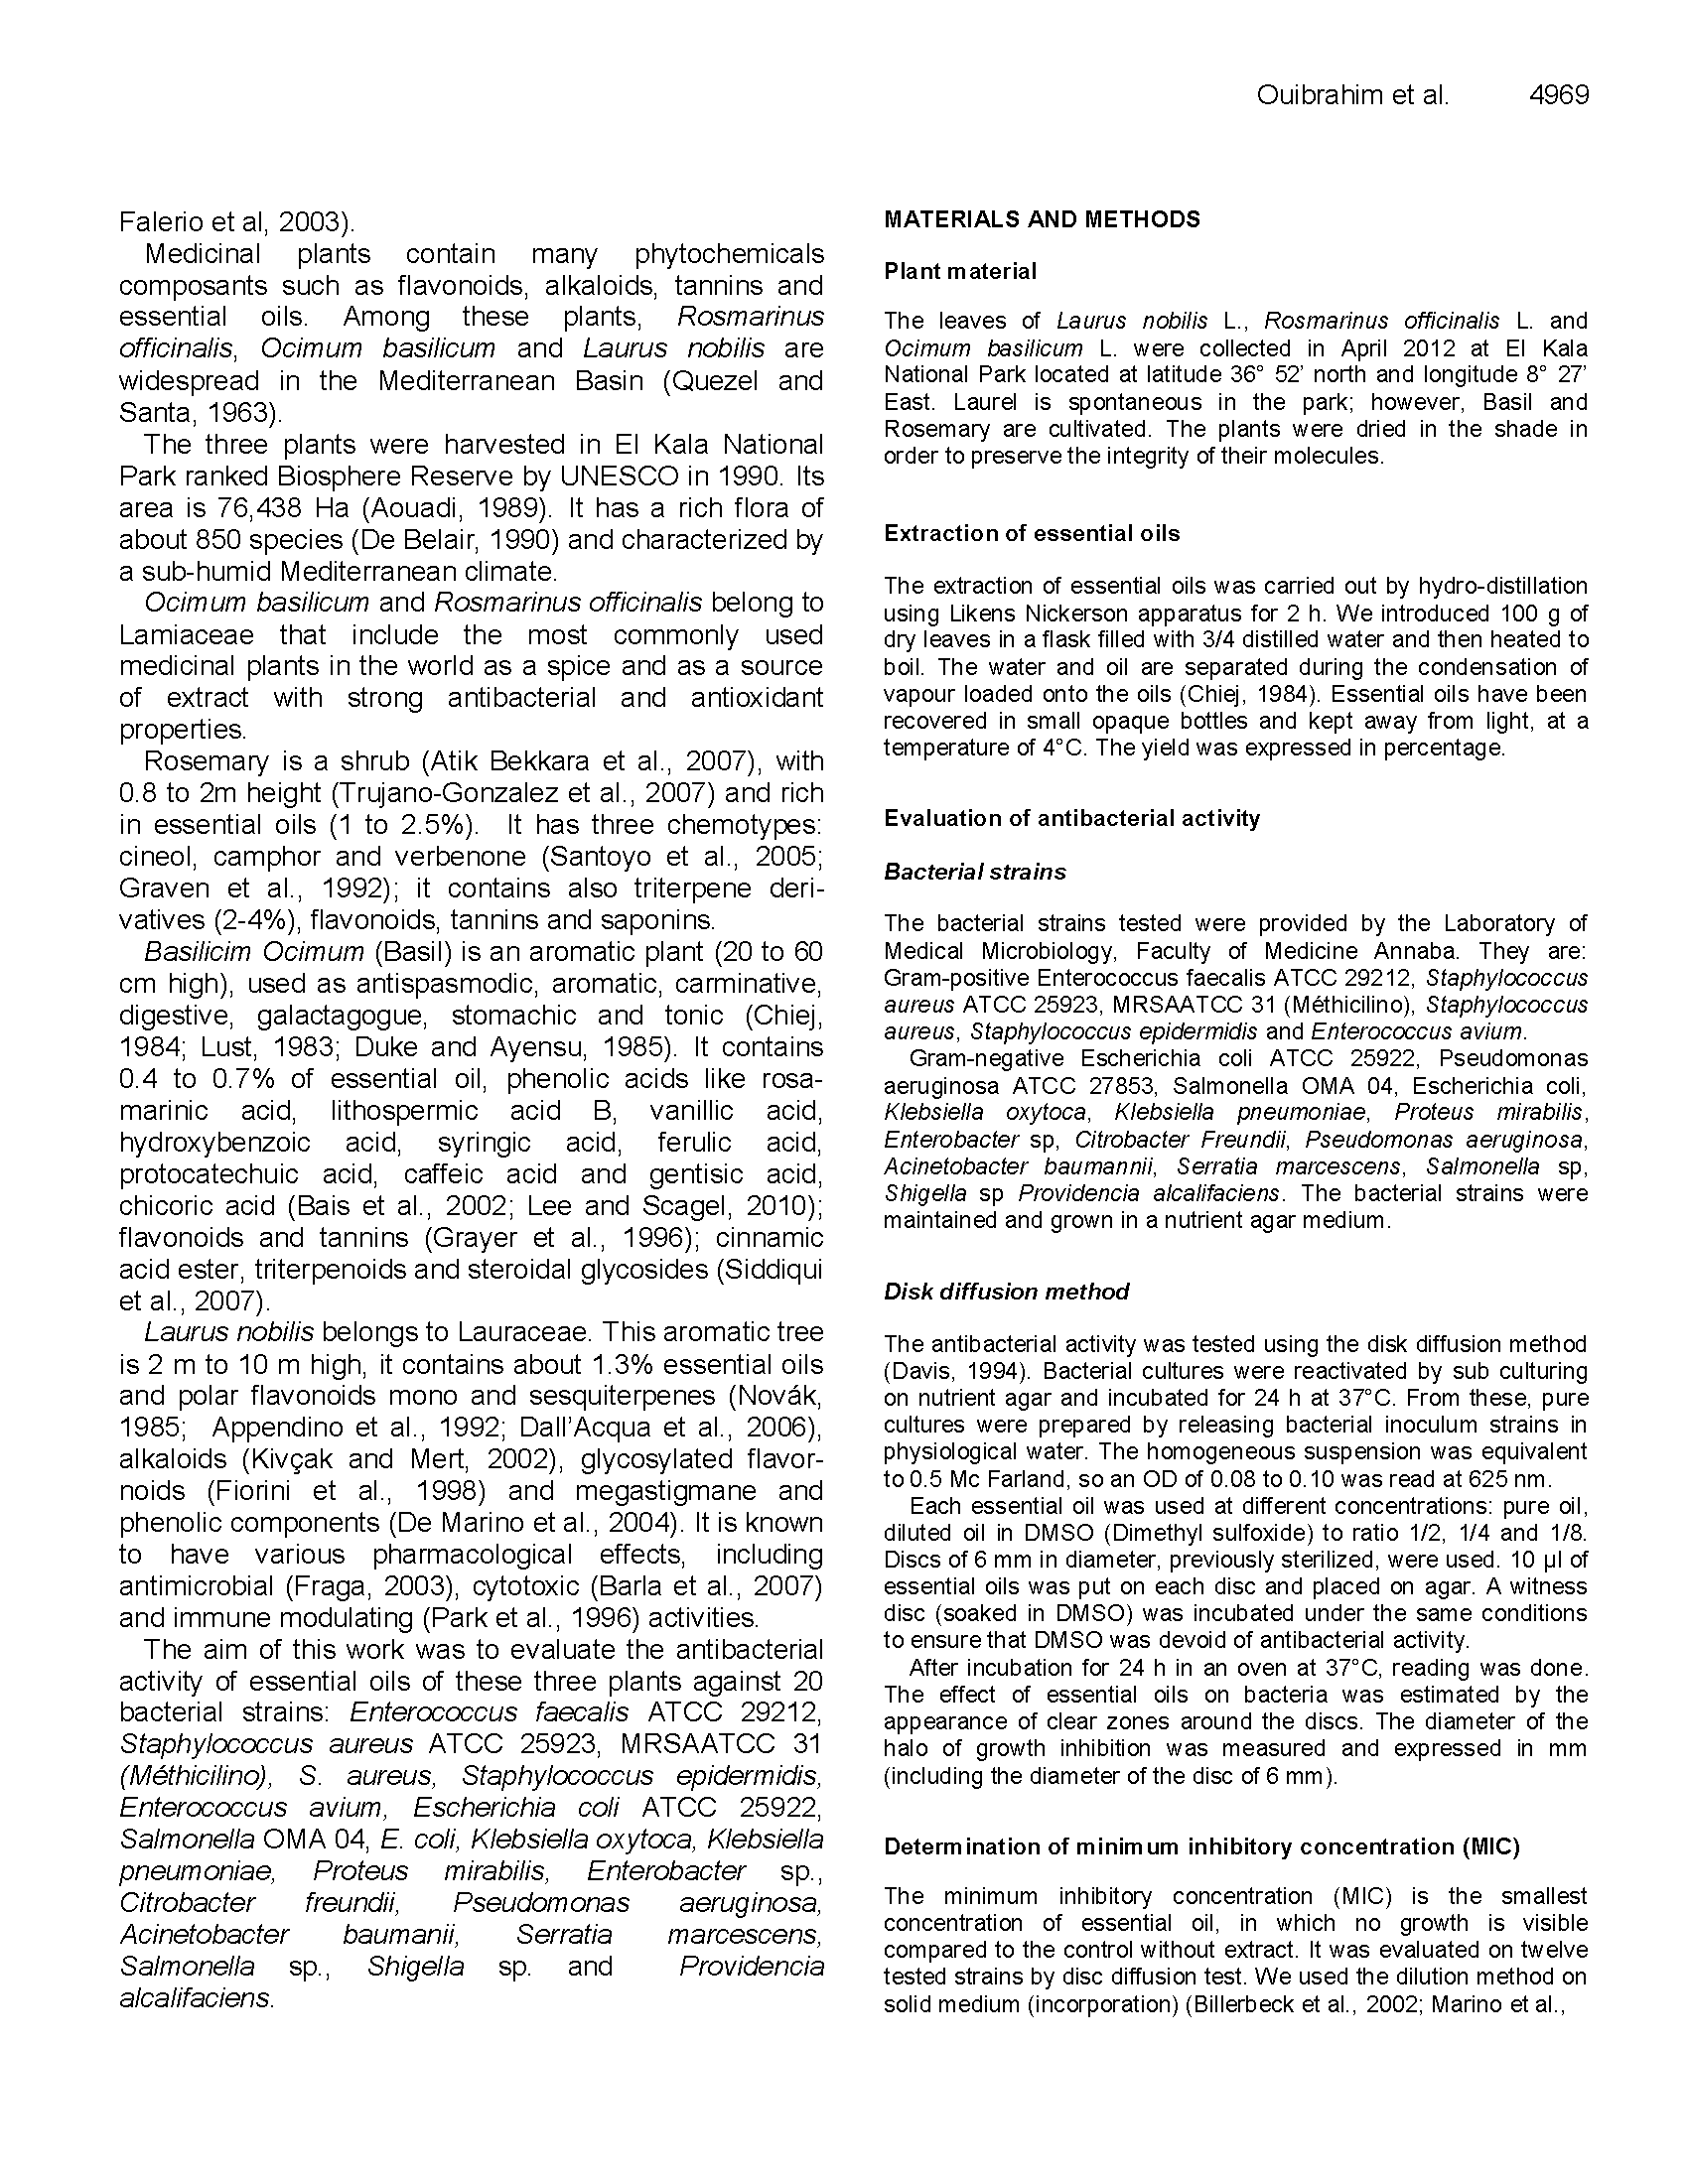 Antibacterial Activity of Laurel Berry, Rosemary, and Basil Oils page 2